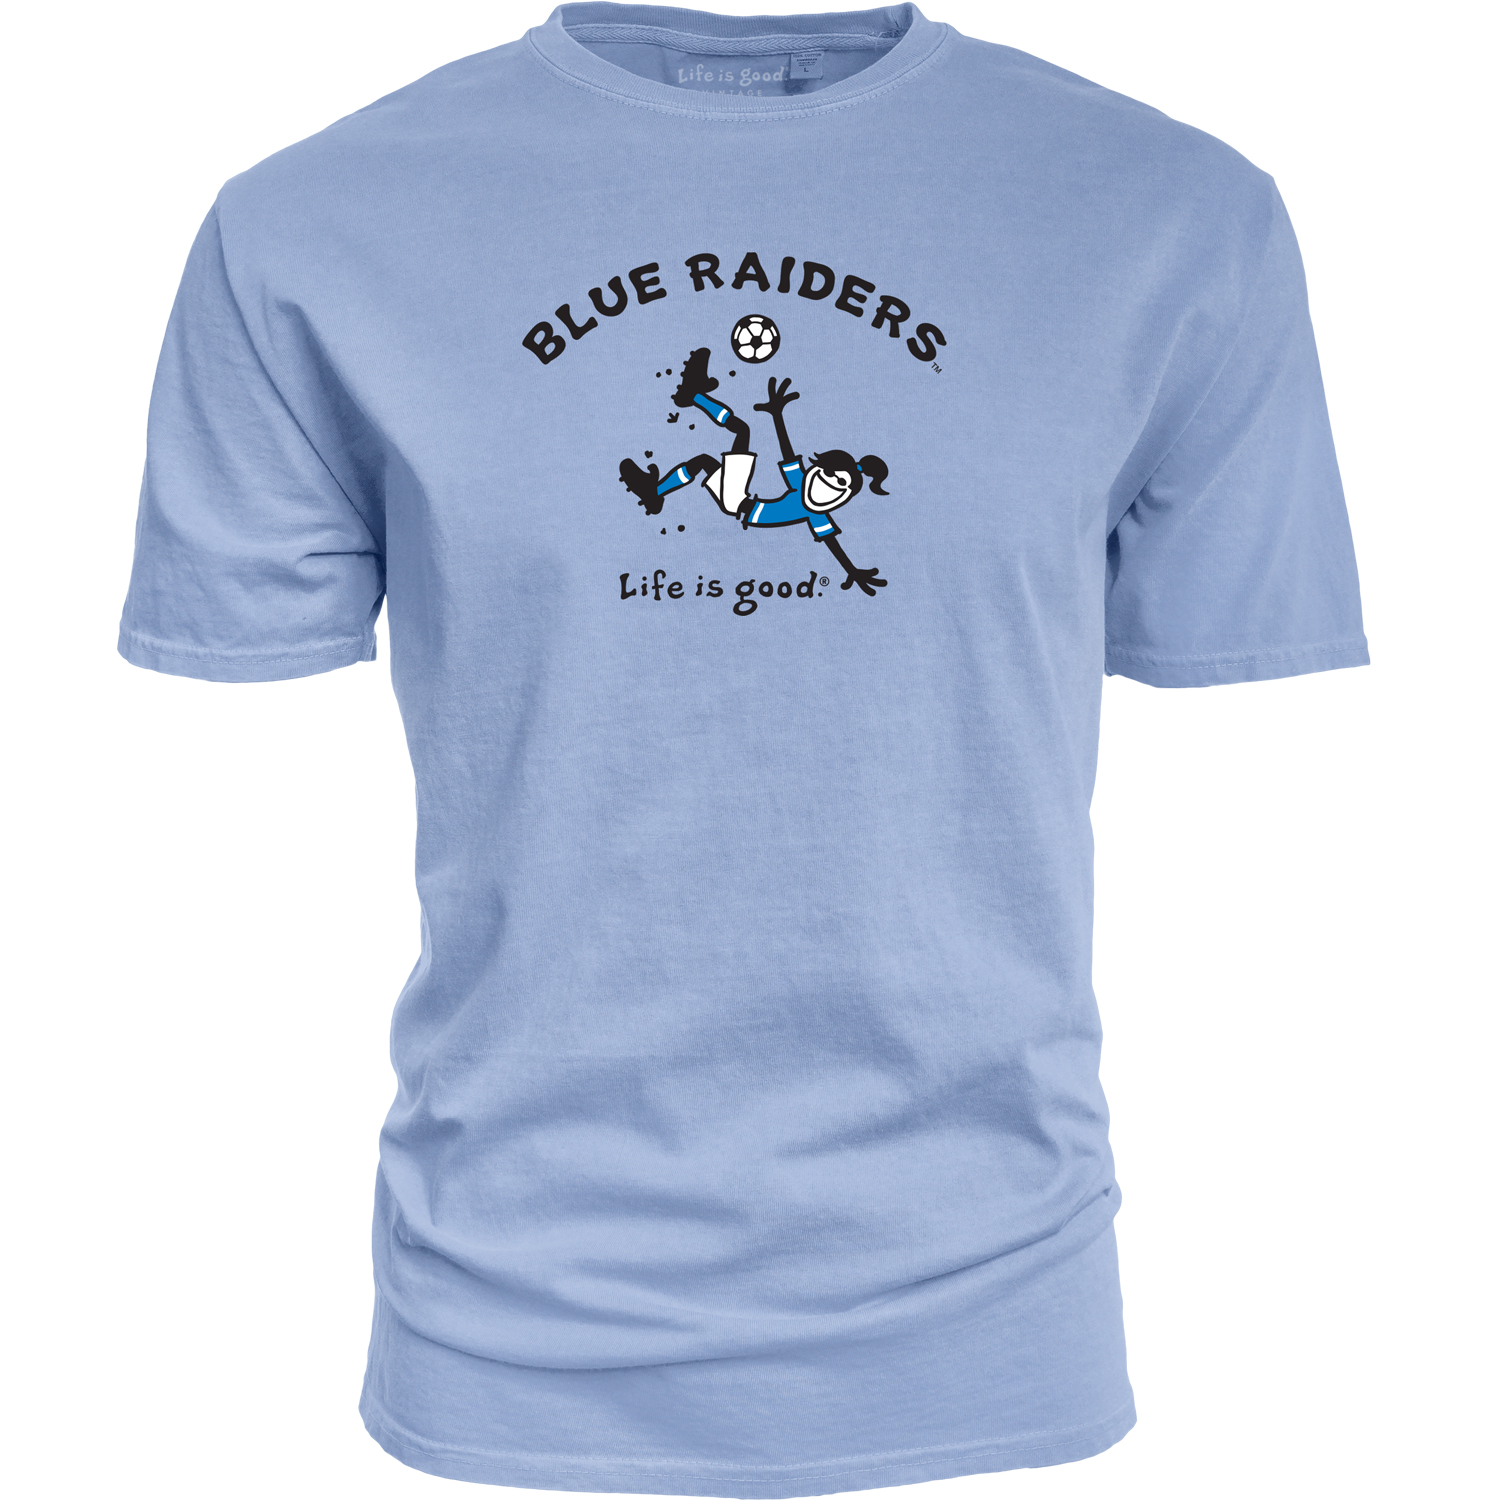 Blue Raiders Life is Good® Soccer Dyed Ringspun Shirt